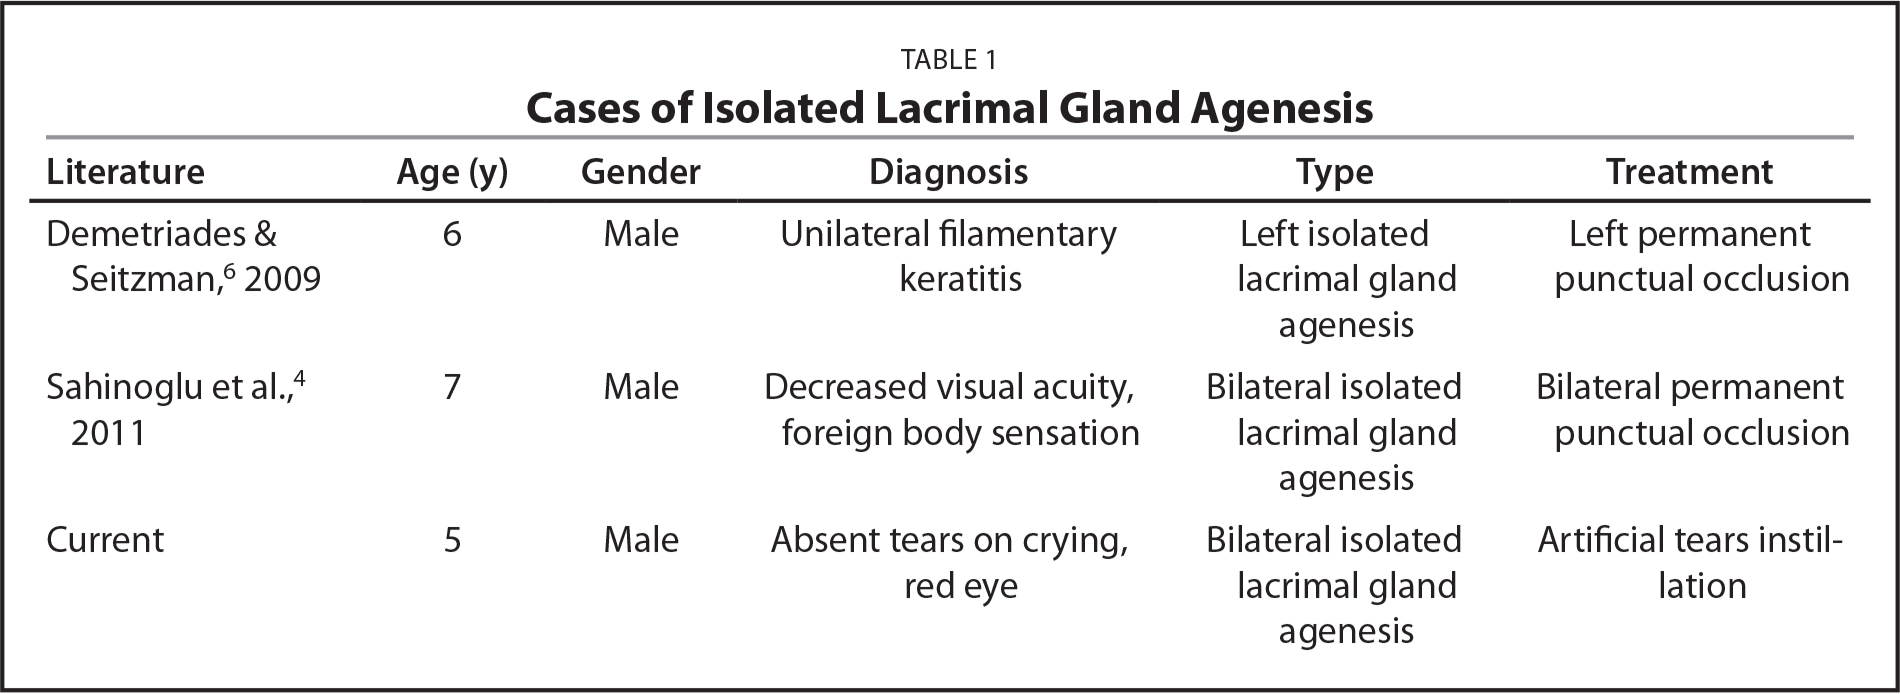 Cases of Isolated Lacrimal Gland Agenesis